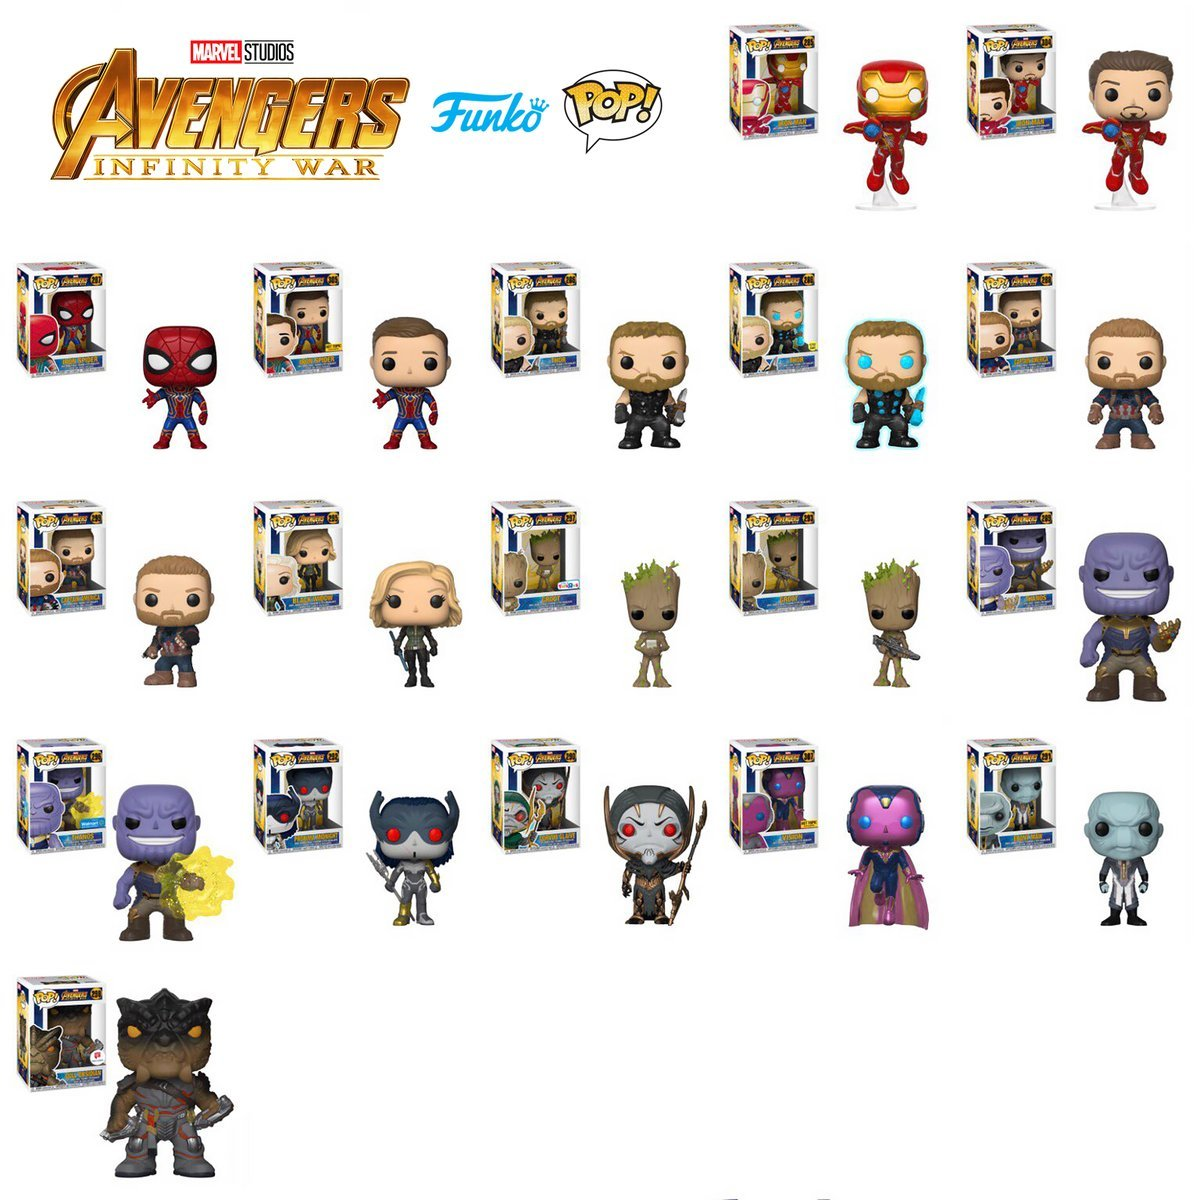 Avengers clipart avengers infinity war. Marvel feed first wave